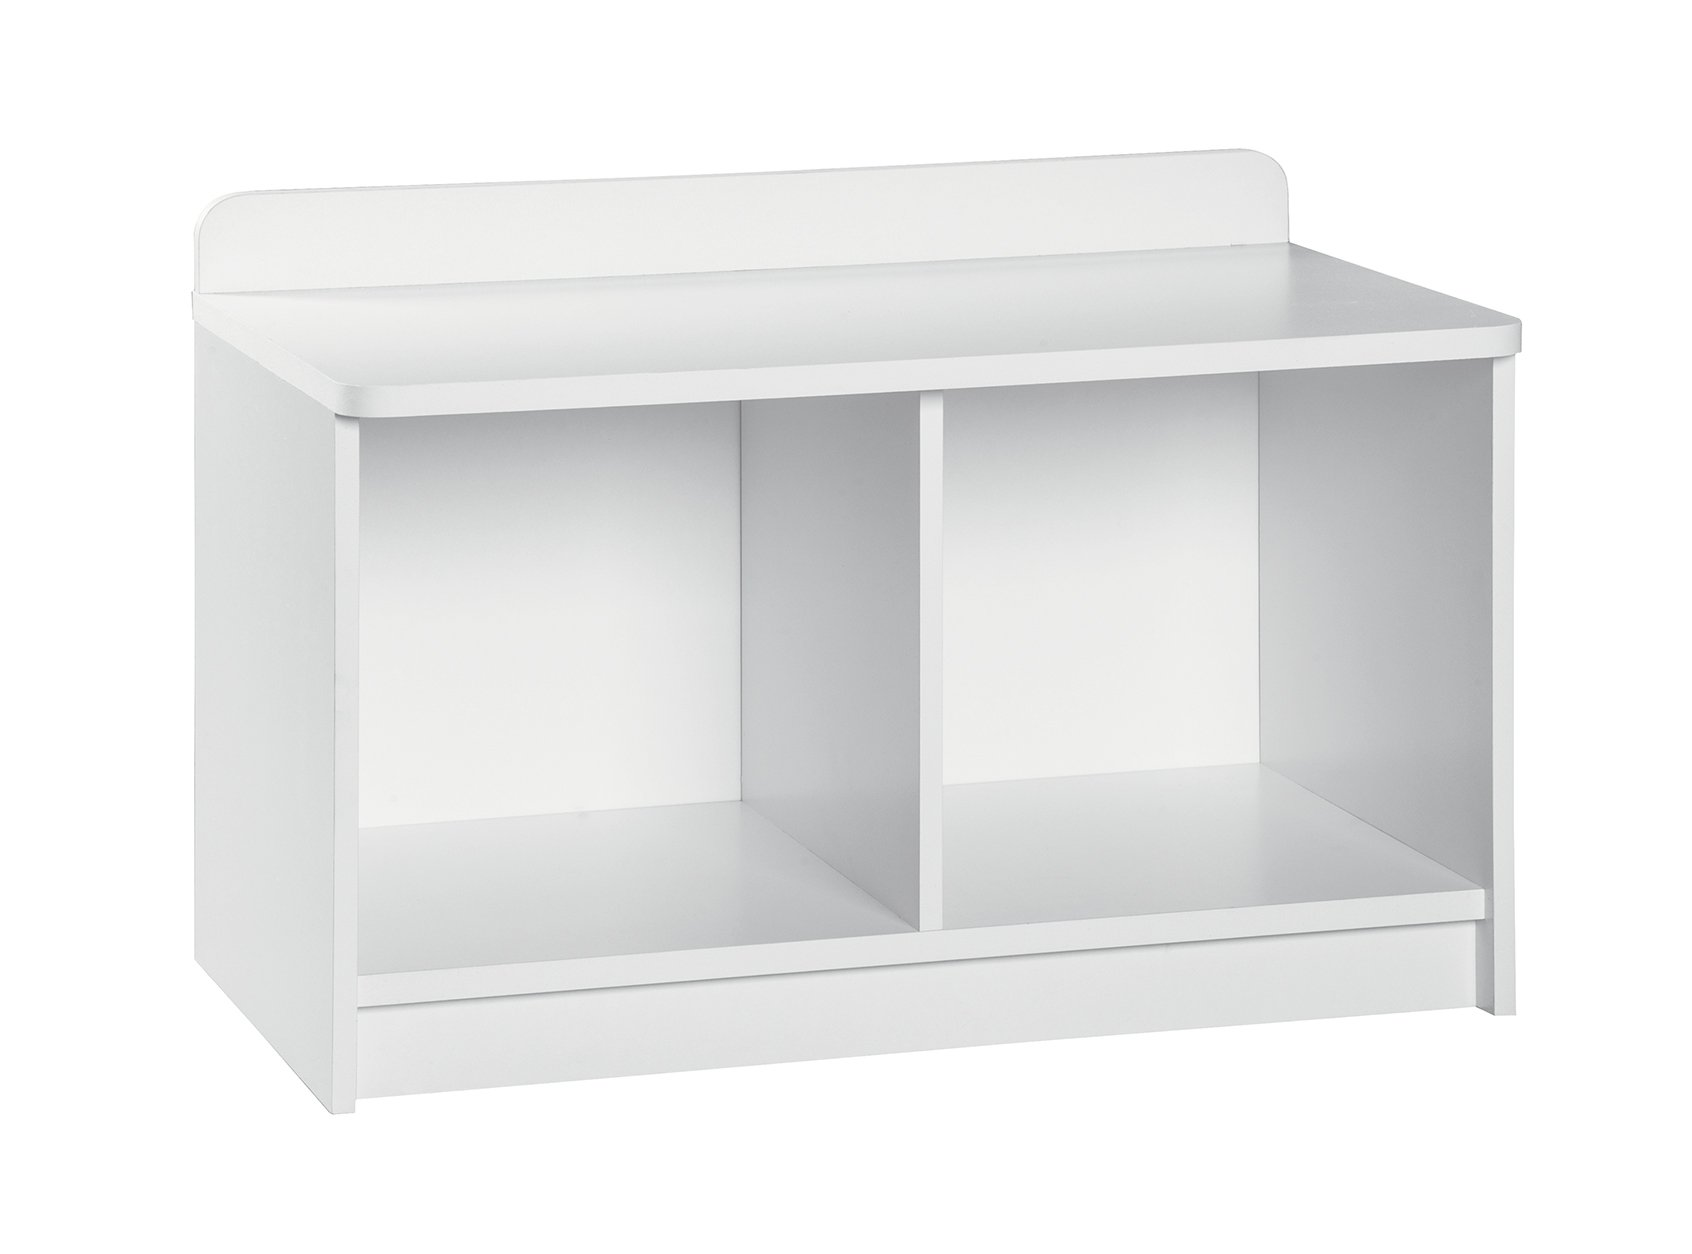 ClosetMaid 1494 KidSpace Small Storage Bench, White